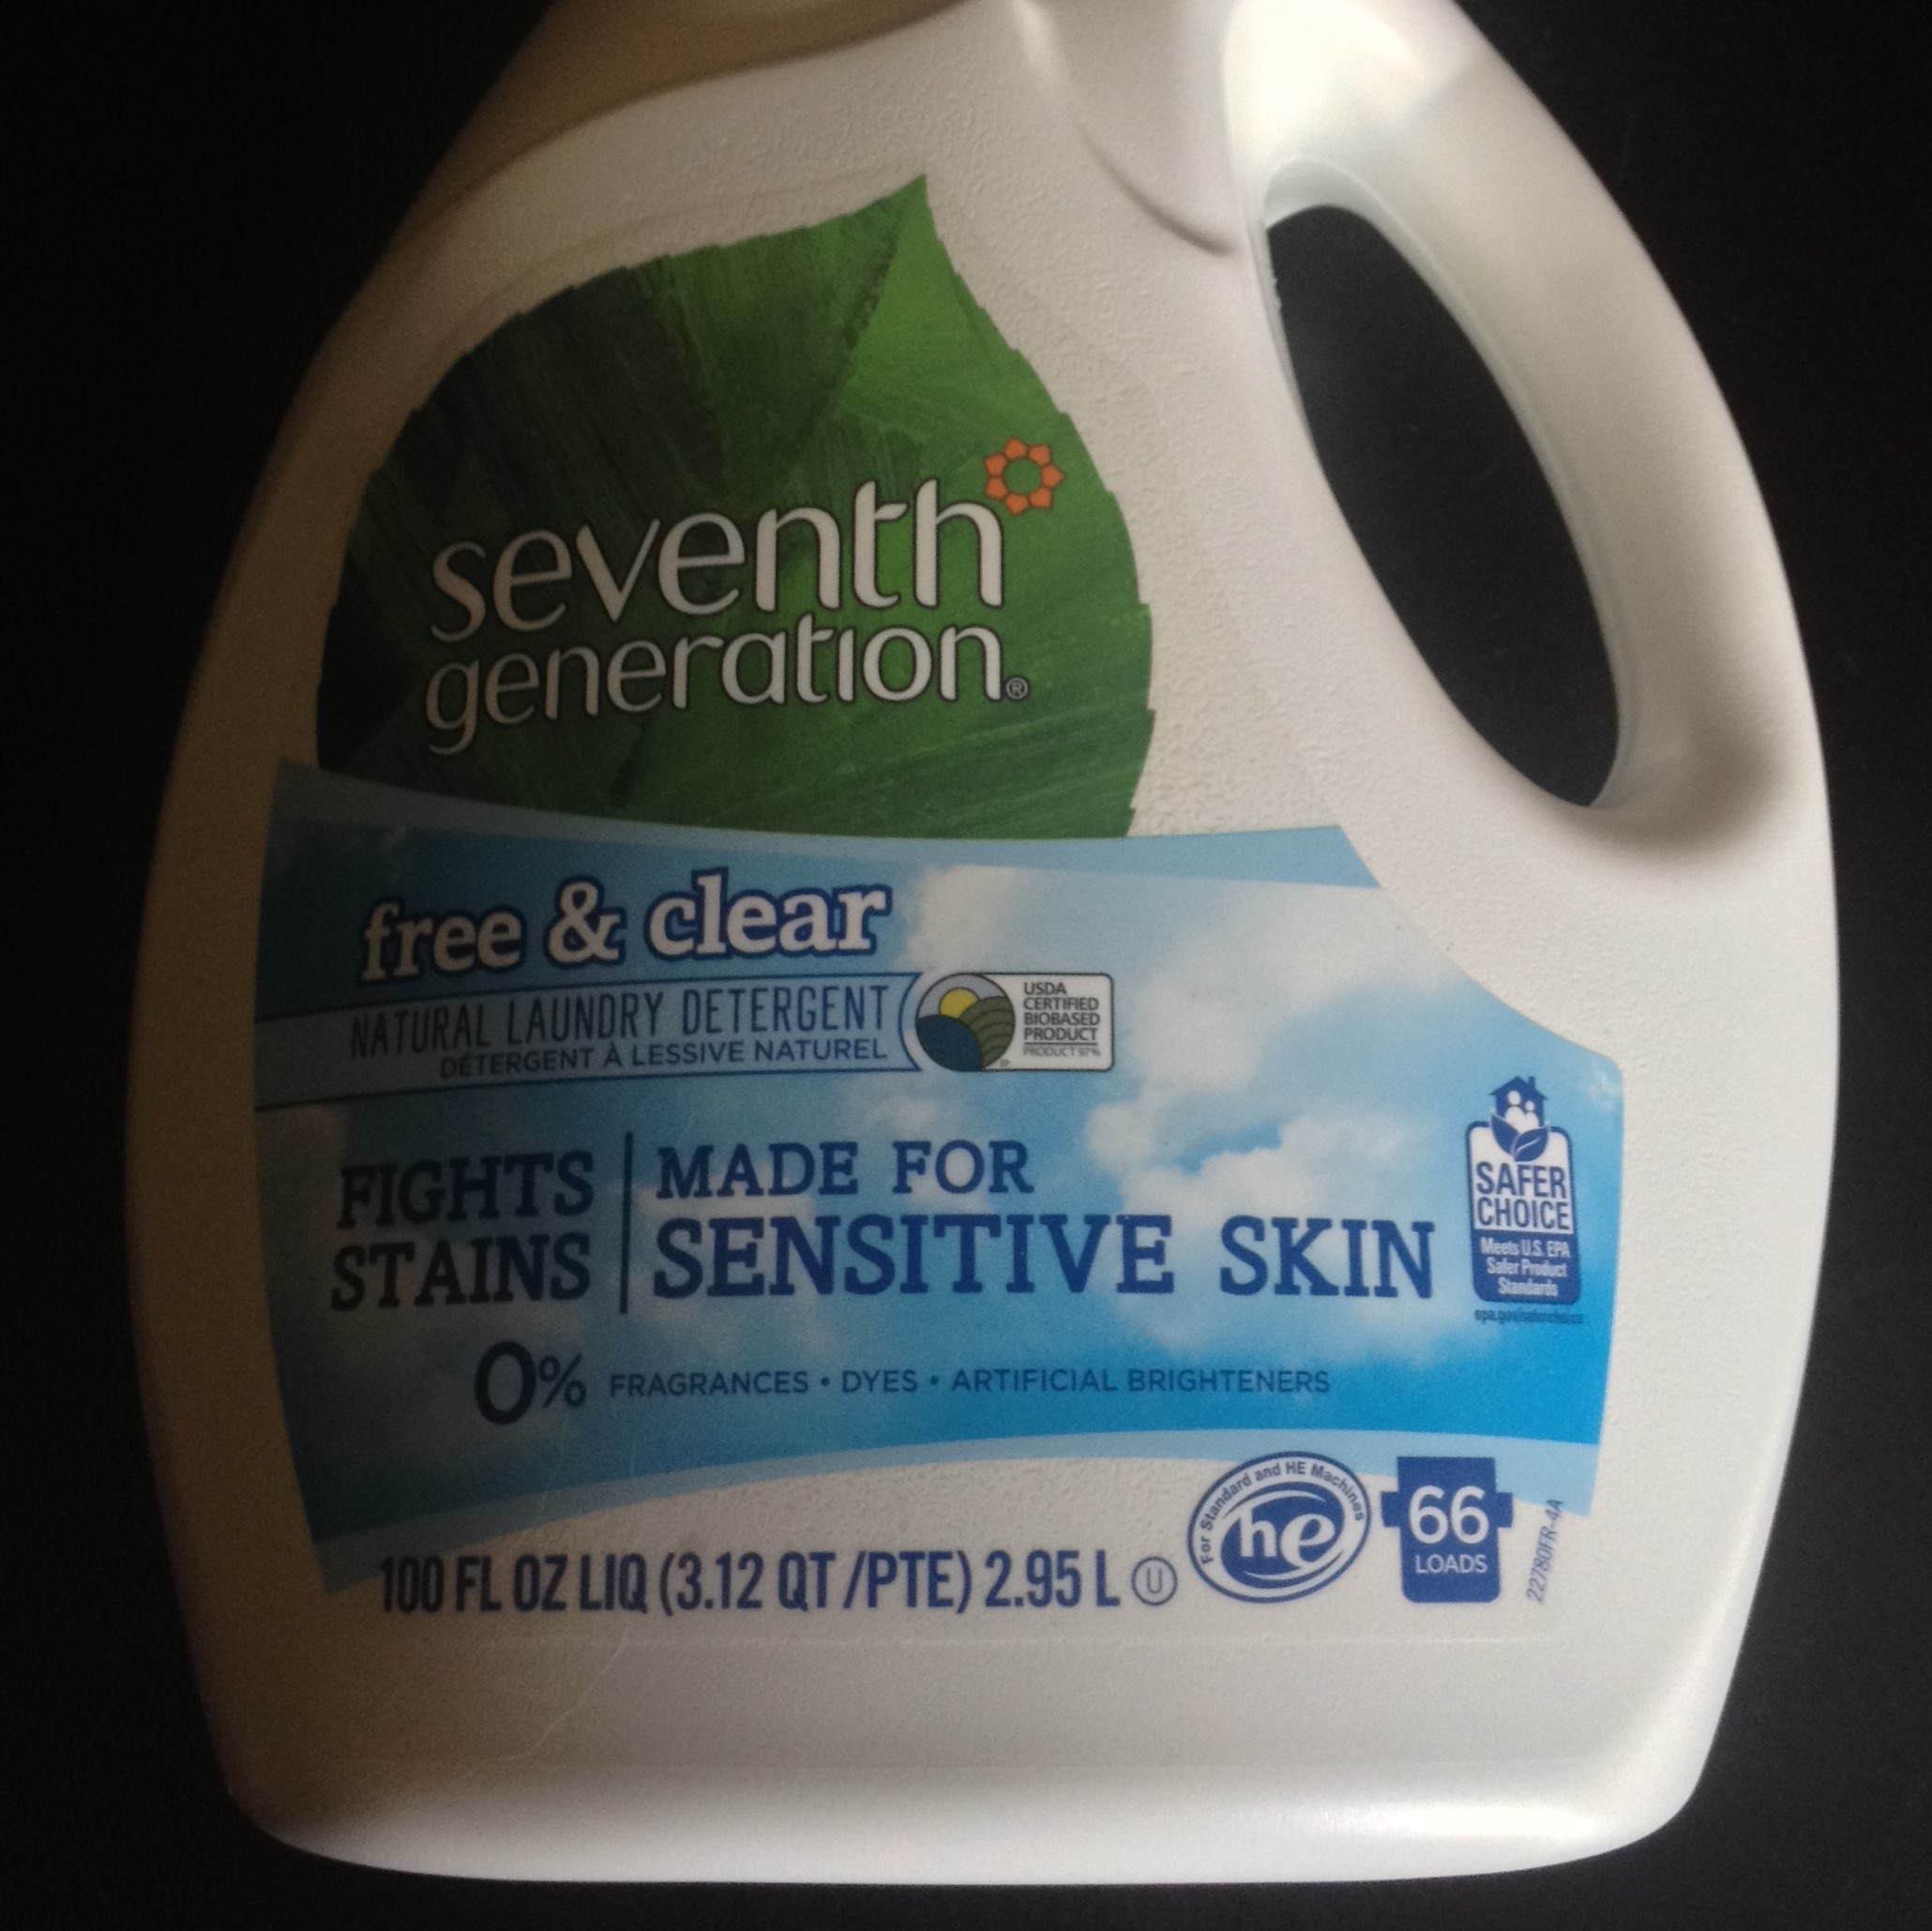 seventh generation free and clear laundry detergent reviews